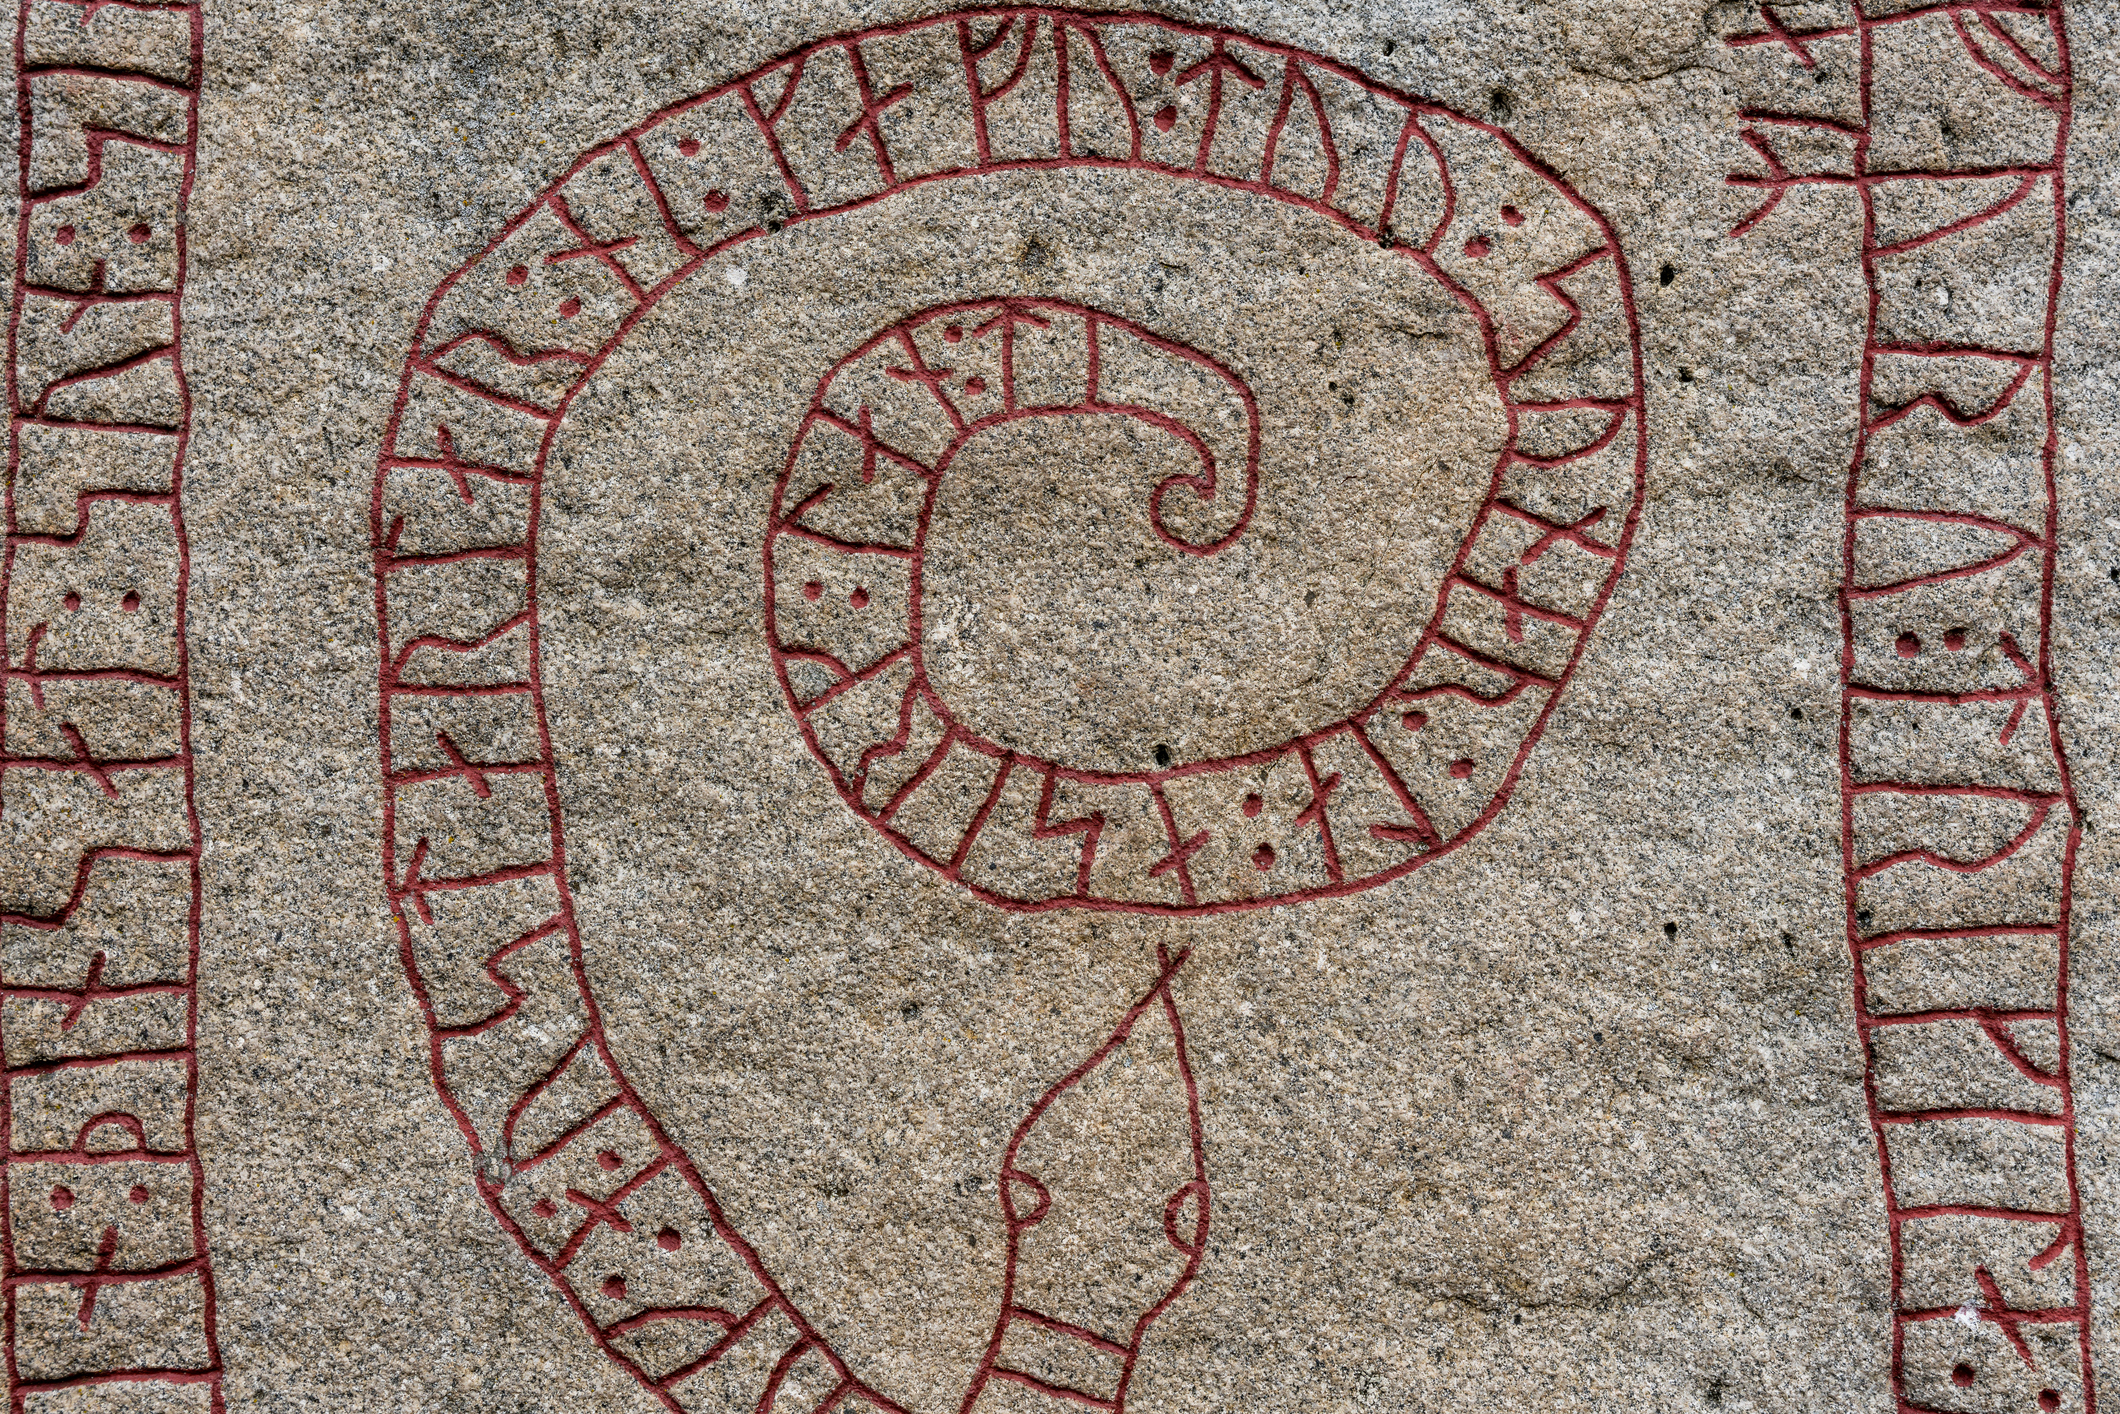 Close up of an old rune stone with red runes in the shape of a snake